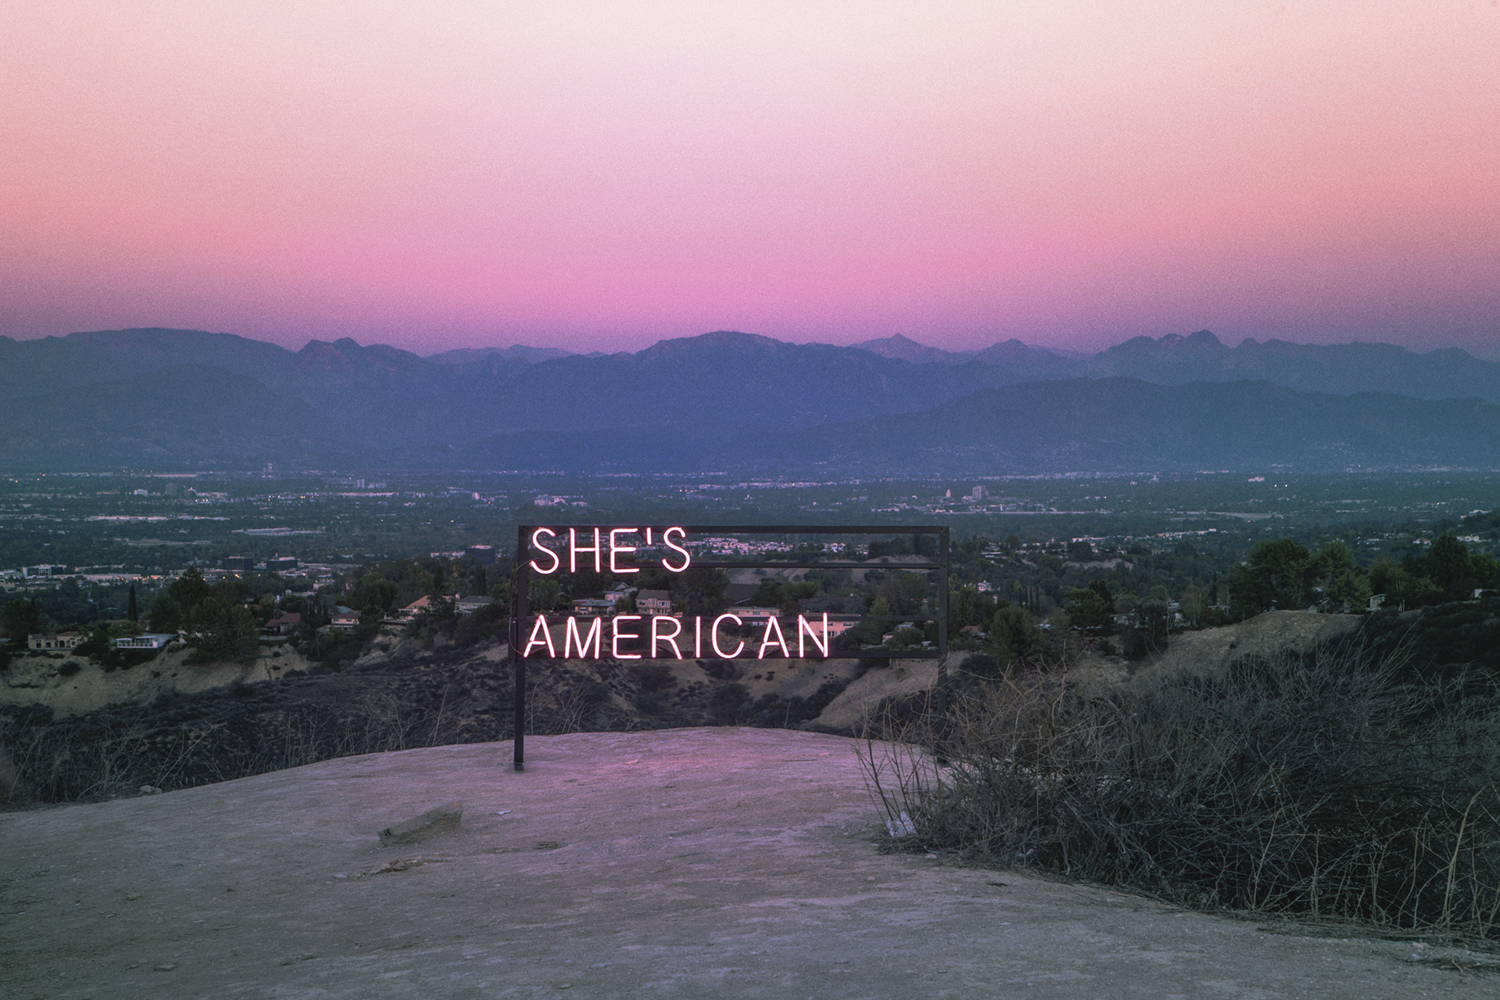 'She's American' — Hollywood (Los Angeles, California)